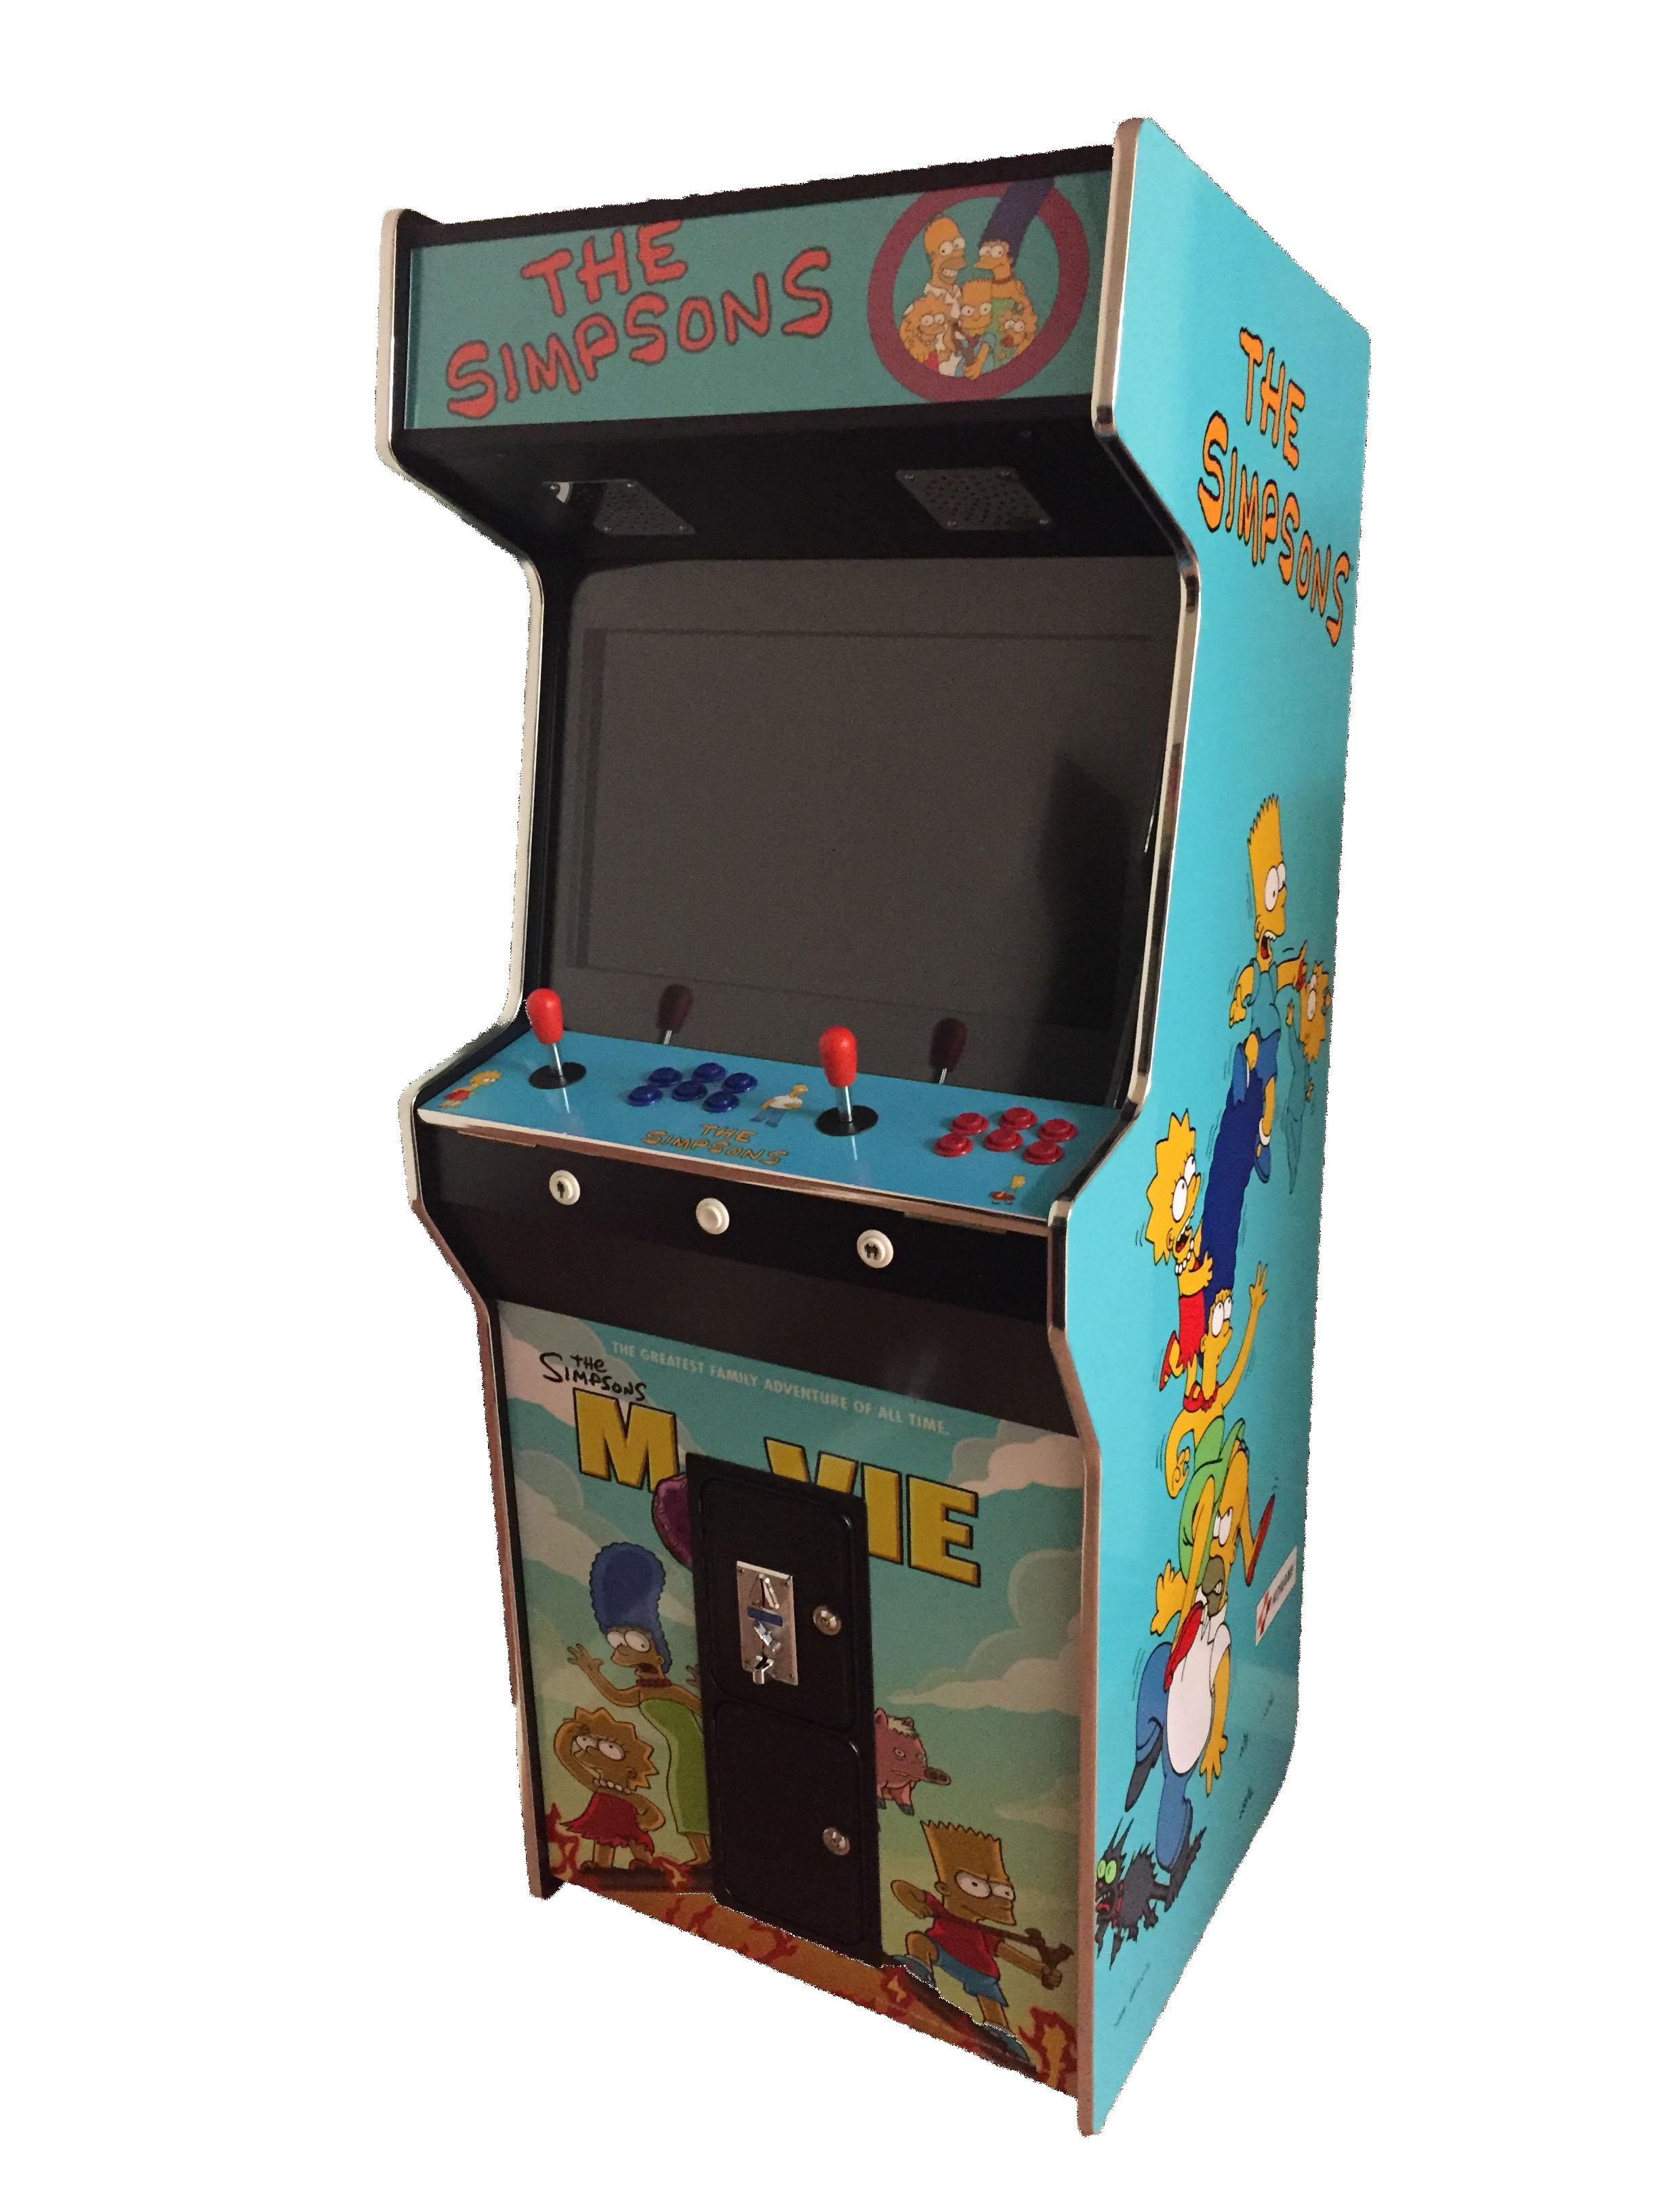 Arcade Rewind 3500 in 1 Upright Arcade Machine Simpsons sydney